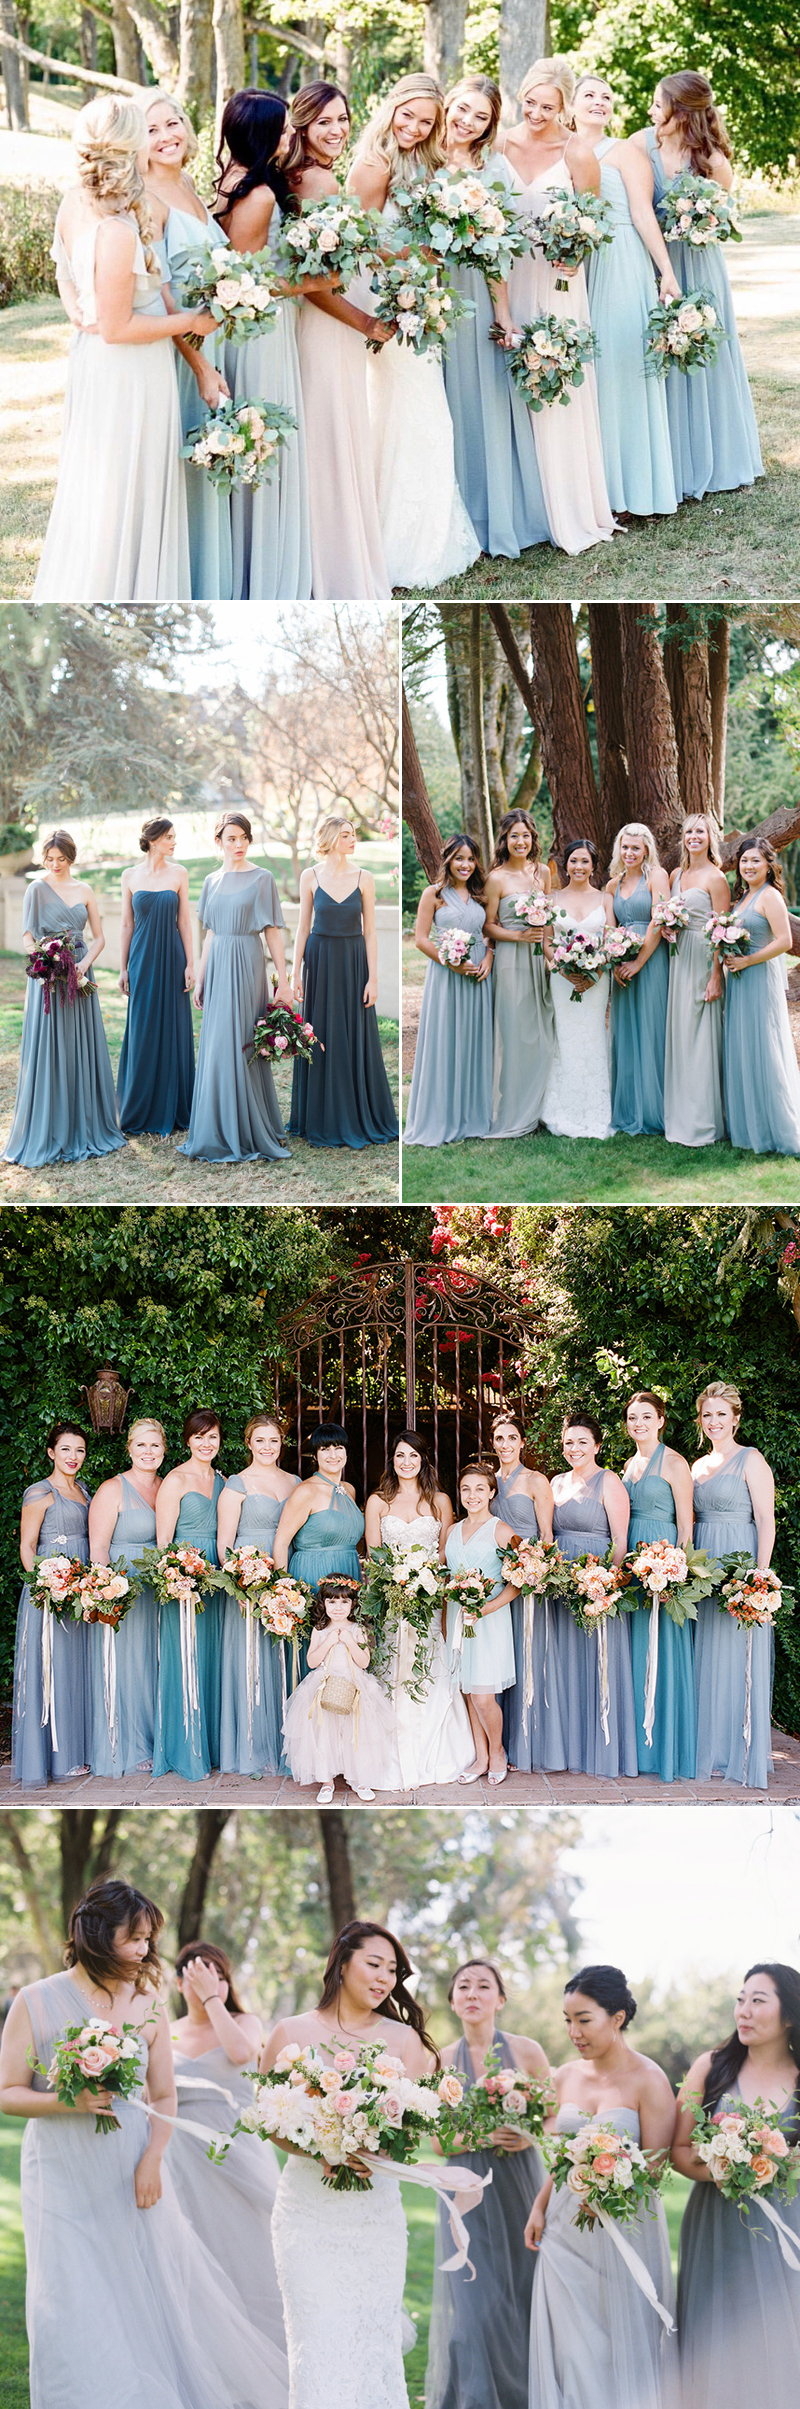 mismatched-bridesmaiddress05-shadesofblue